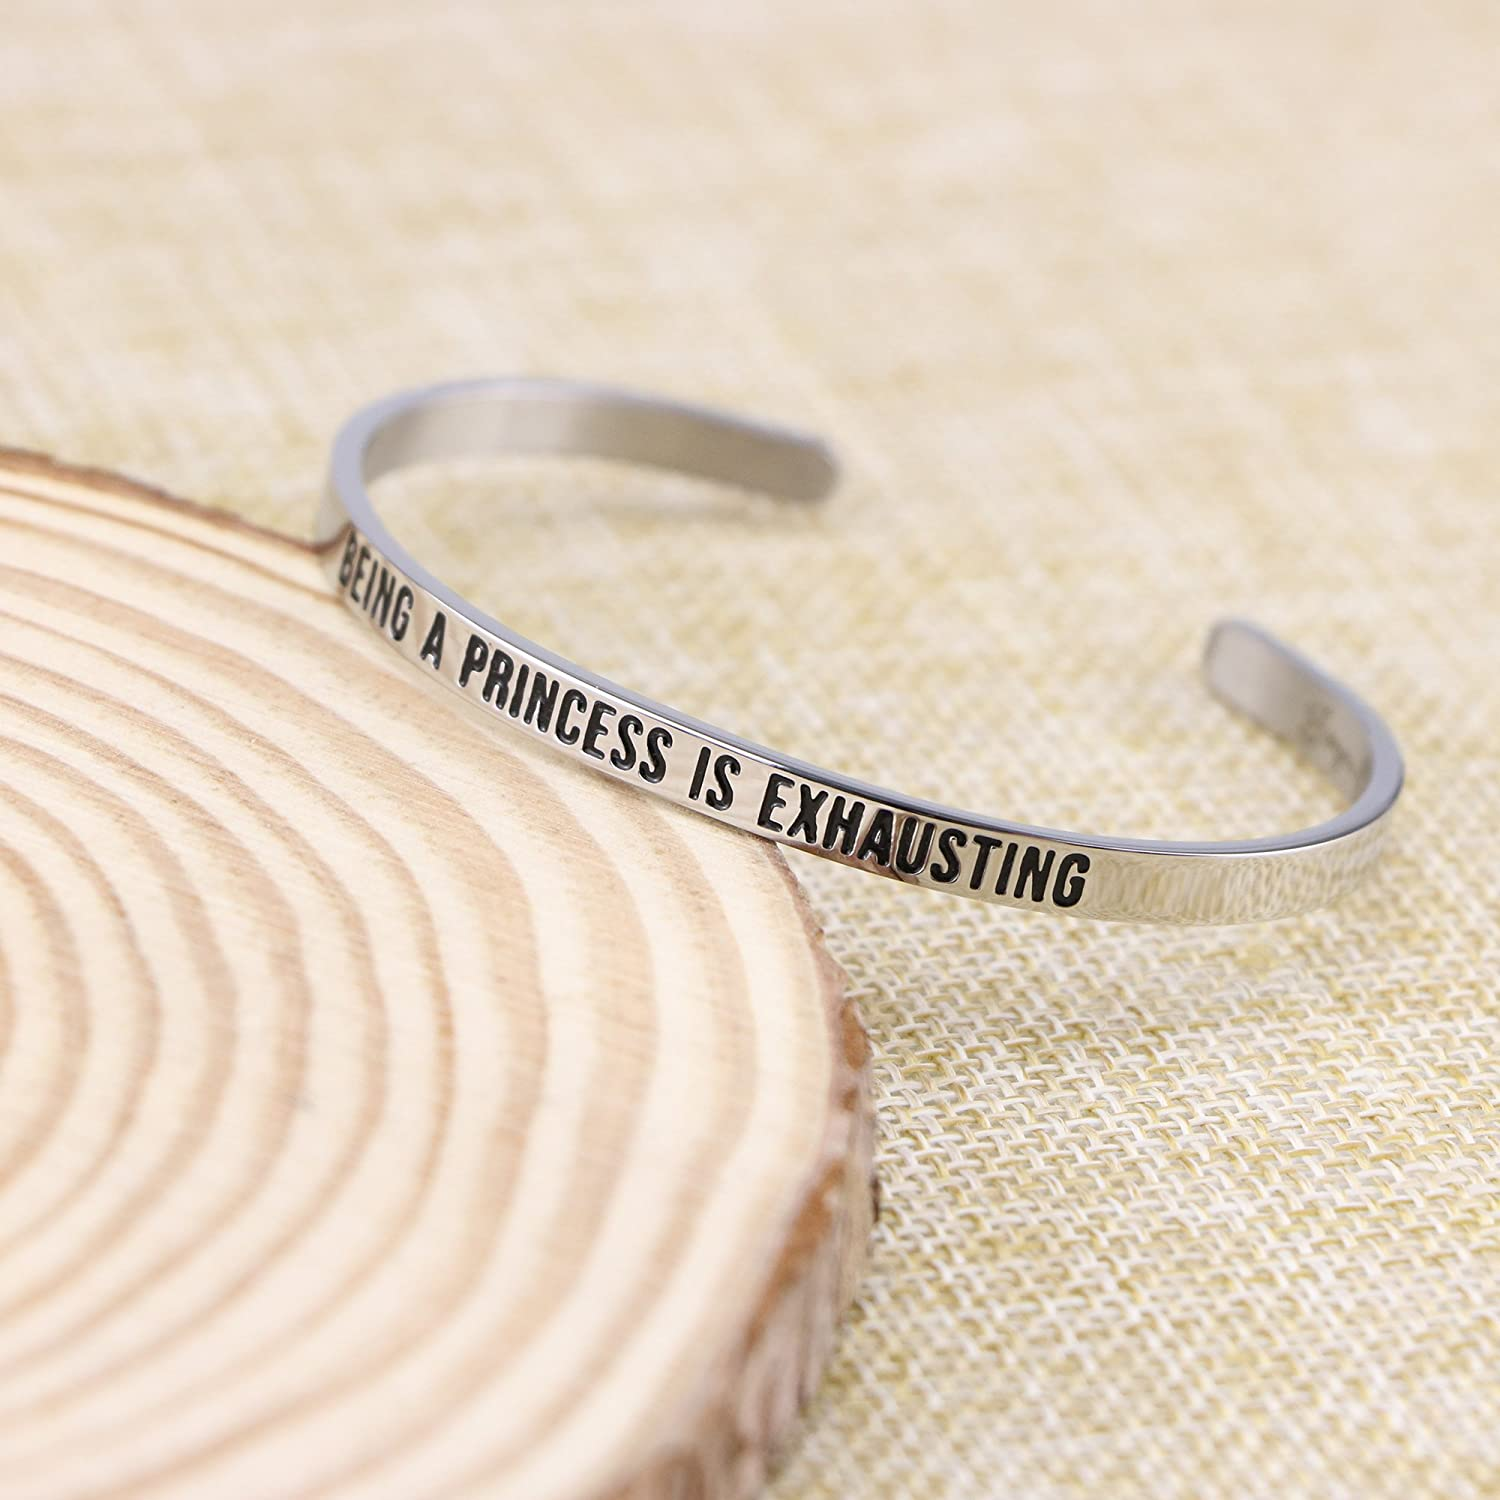 Joycuff Bracelets for Girls Mantra Cuff Bangles Feminist Jewelry Being a Princess is Exhausting